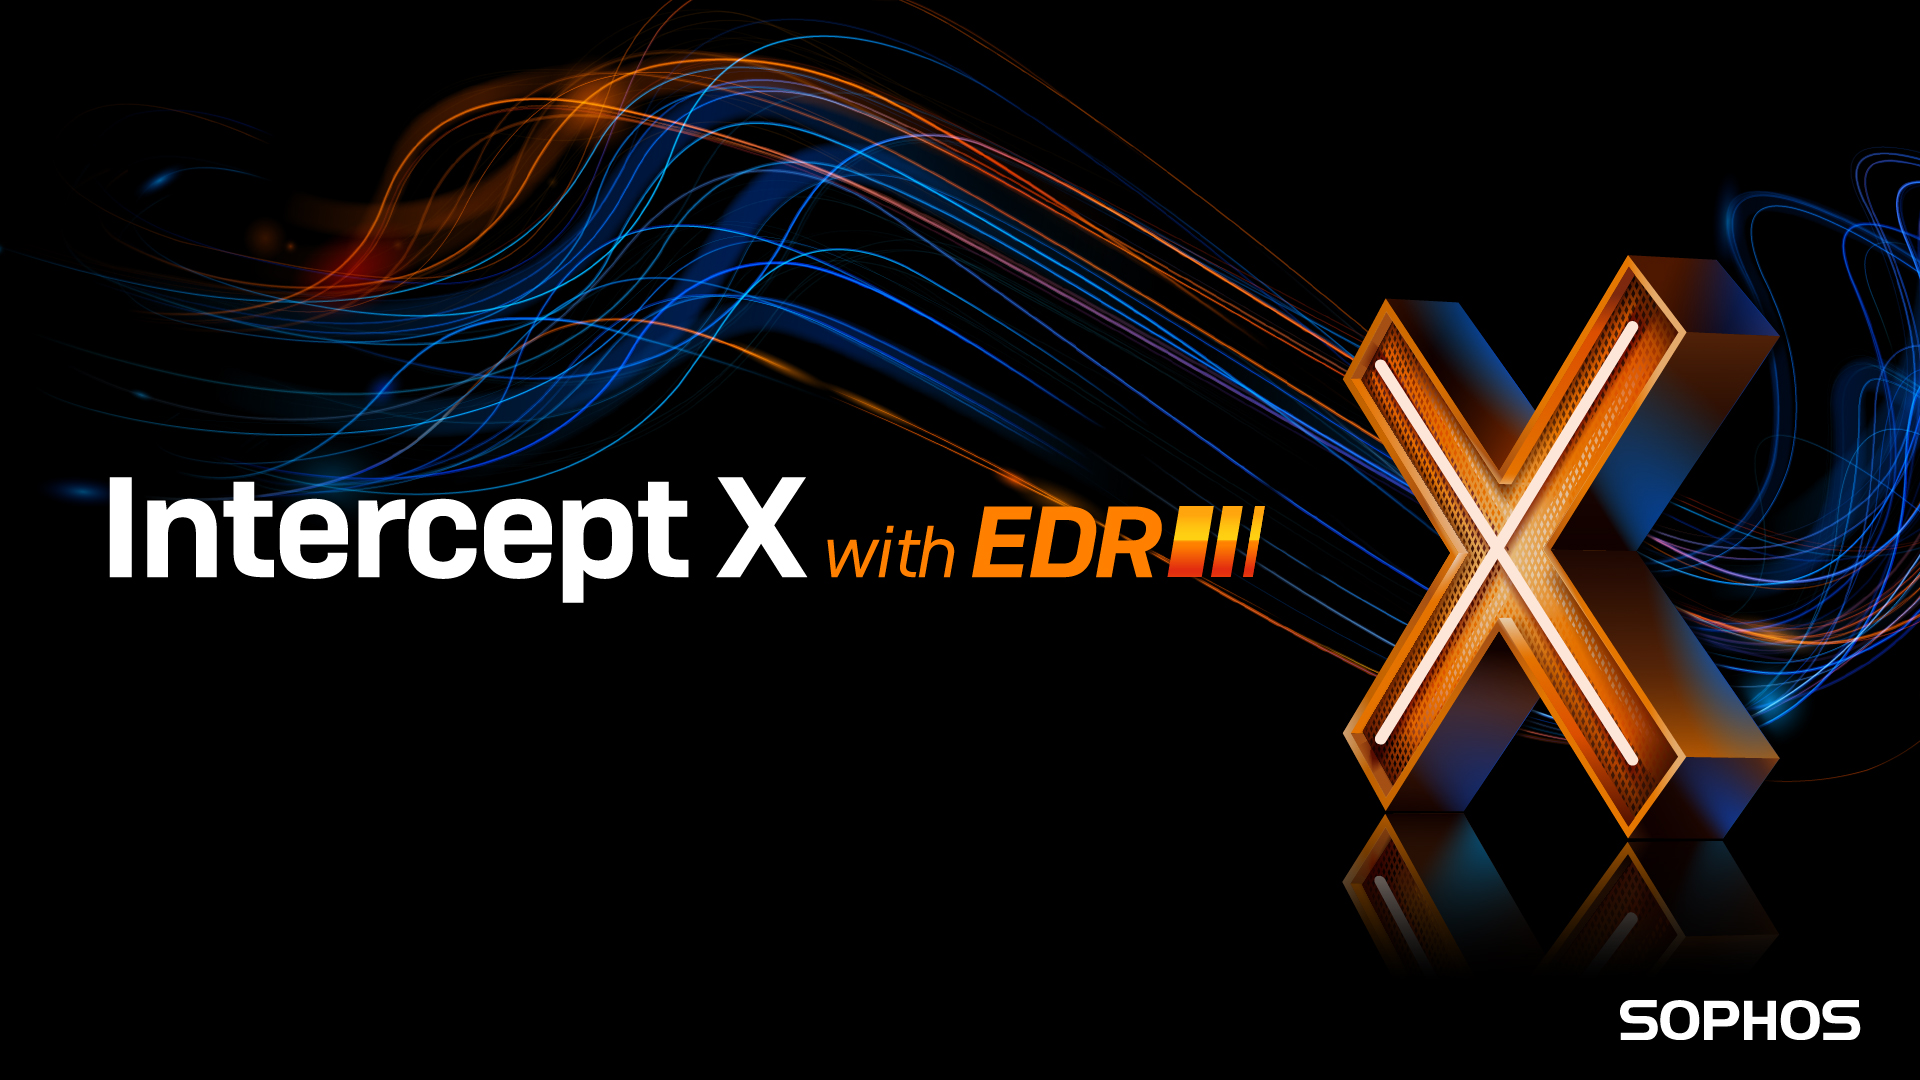 Sophos Intercept X Advanced with EDR – Easy to Manage Multi-Layered Security